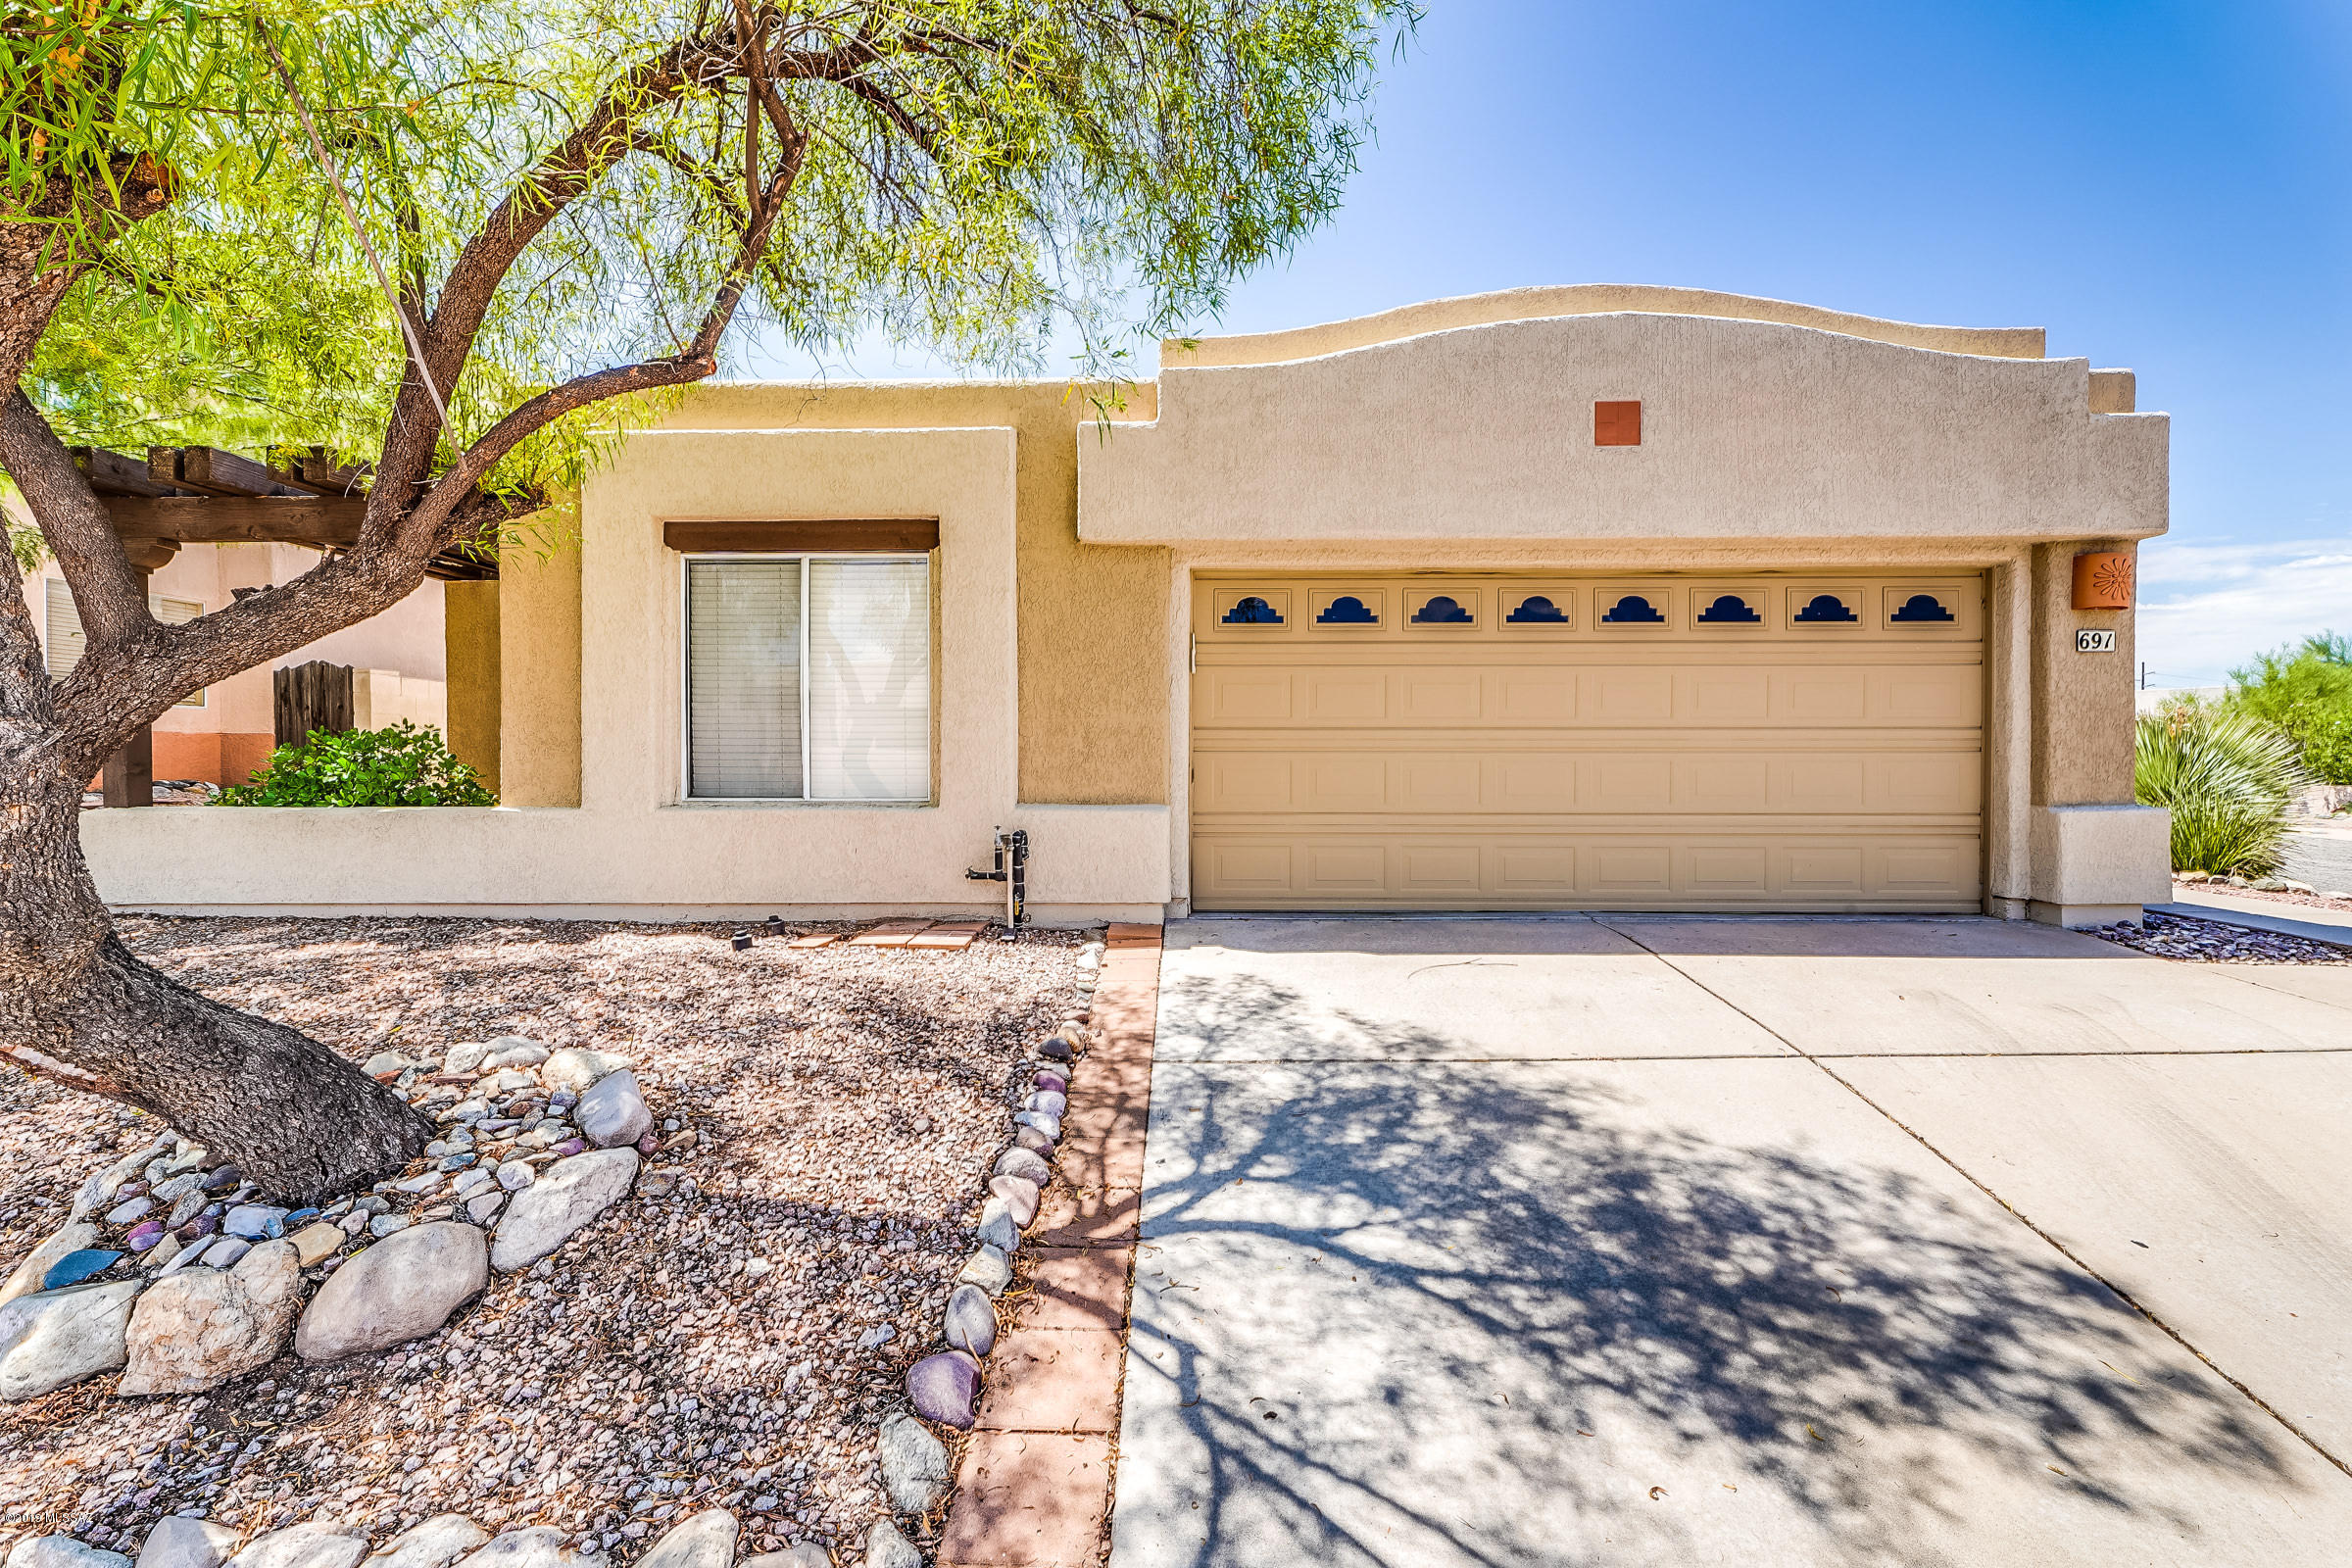 Photo of 691 N Hearthside Lane, Tucson, AZ 85748